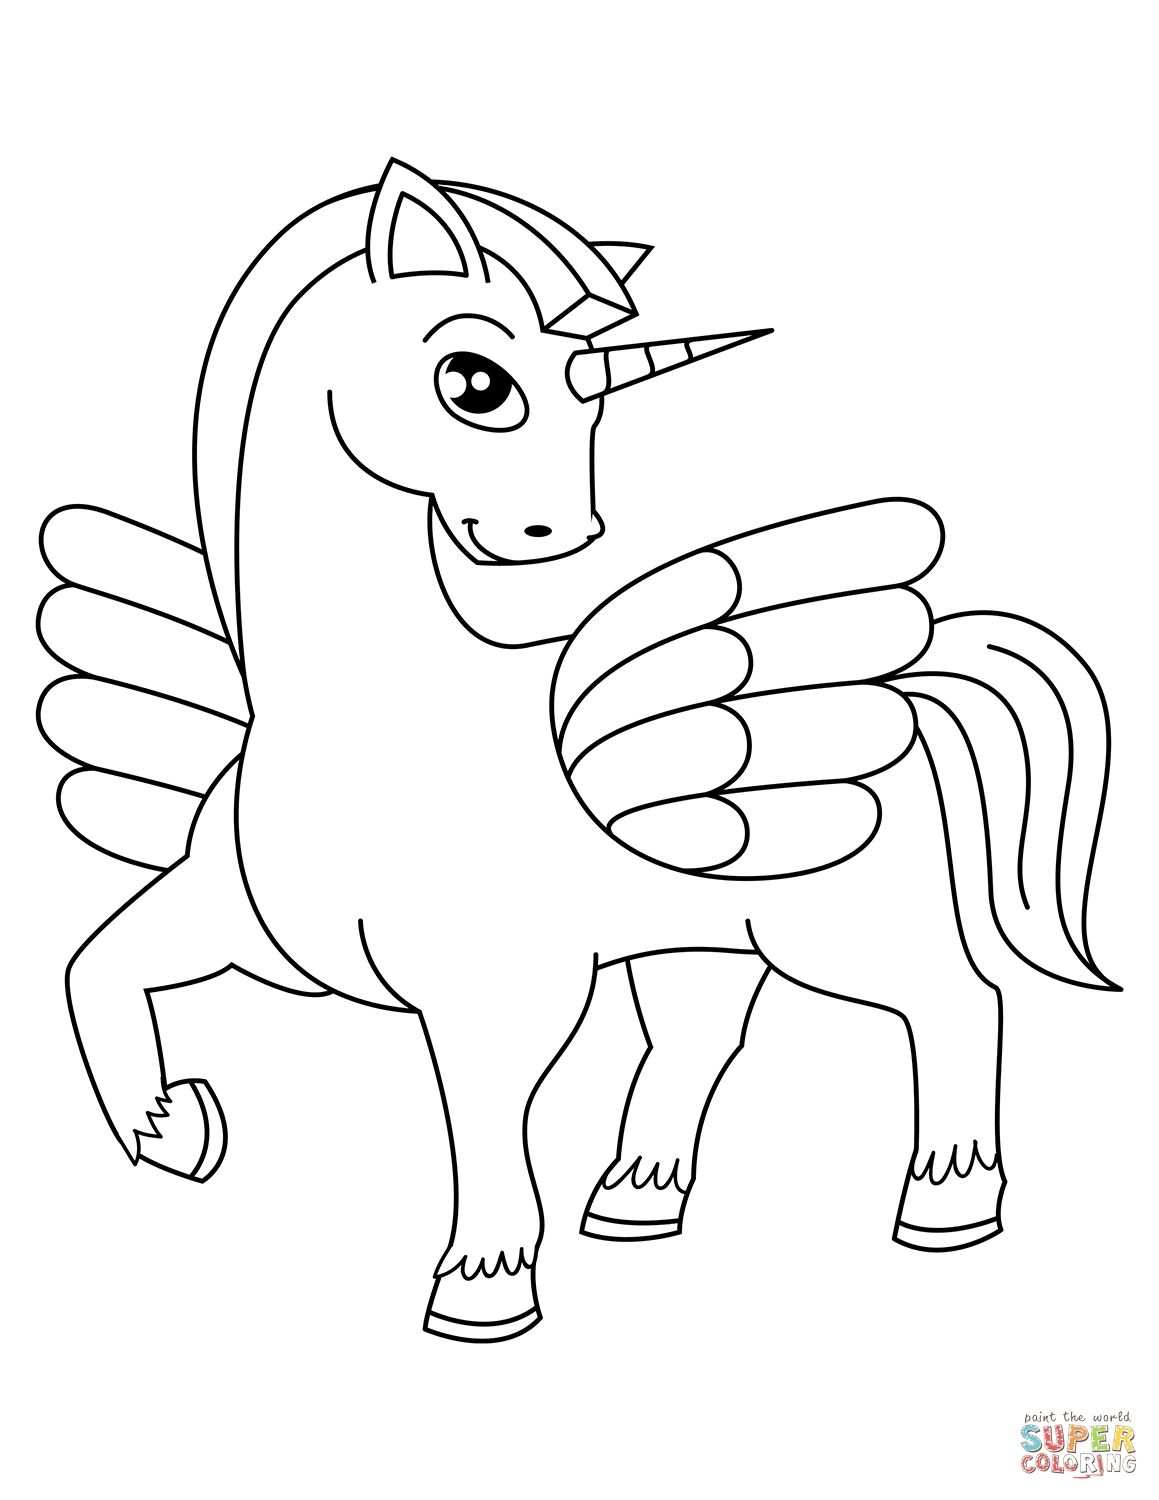 Unicorn Coloring Sheet Pdf Unicorn Coloring Pages Free Coloring